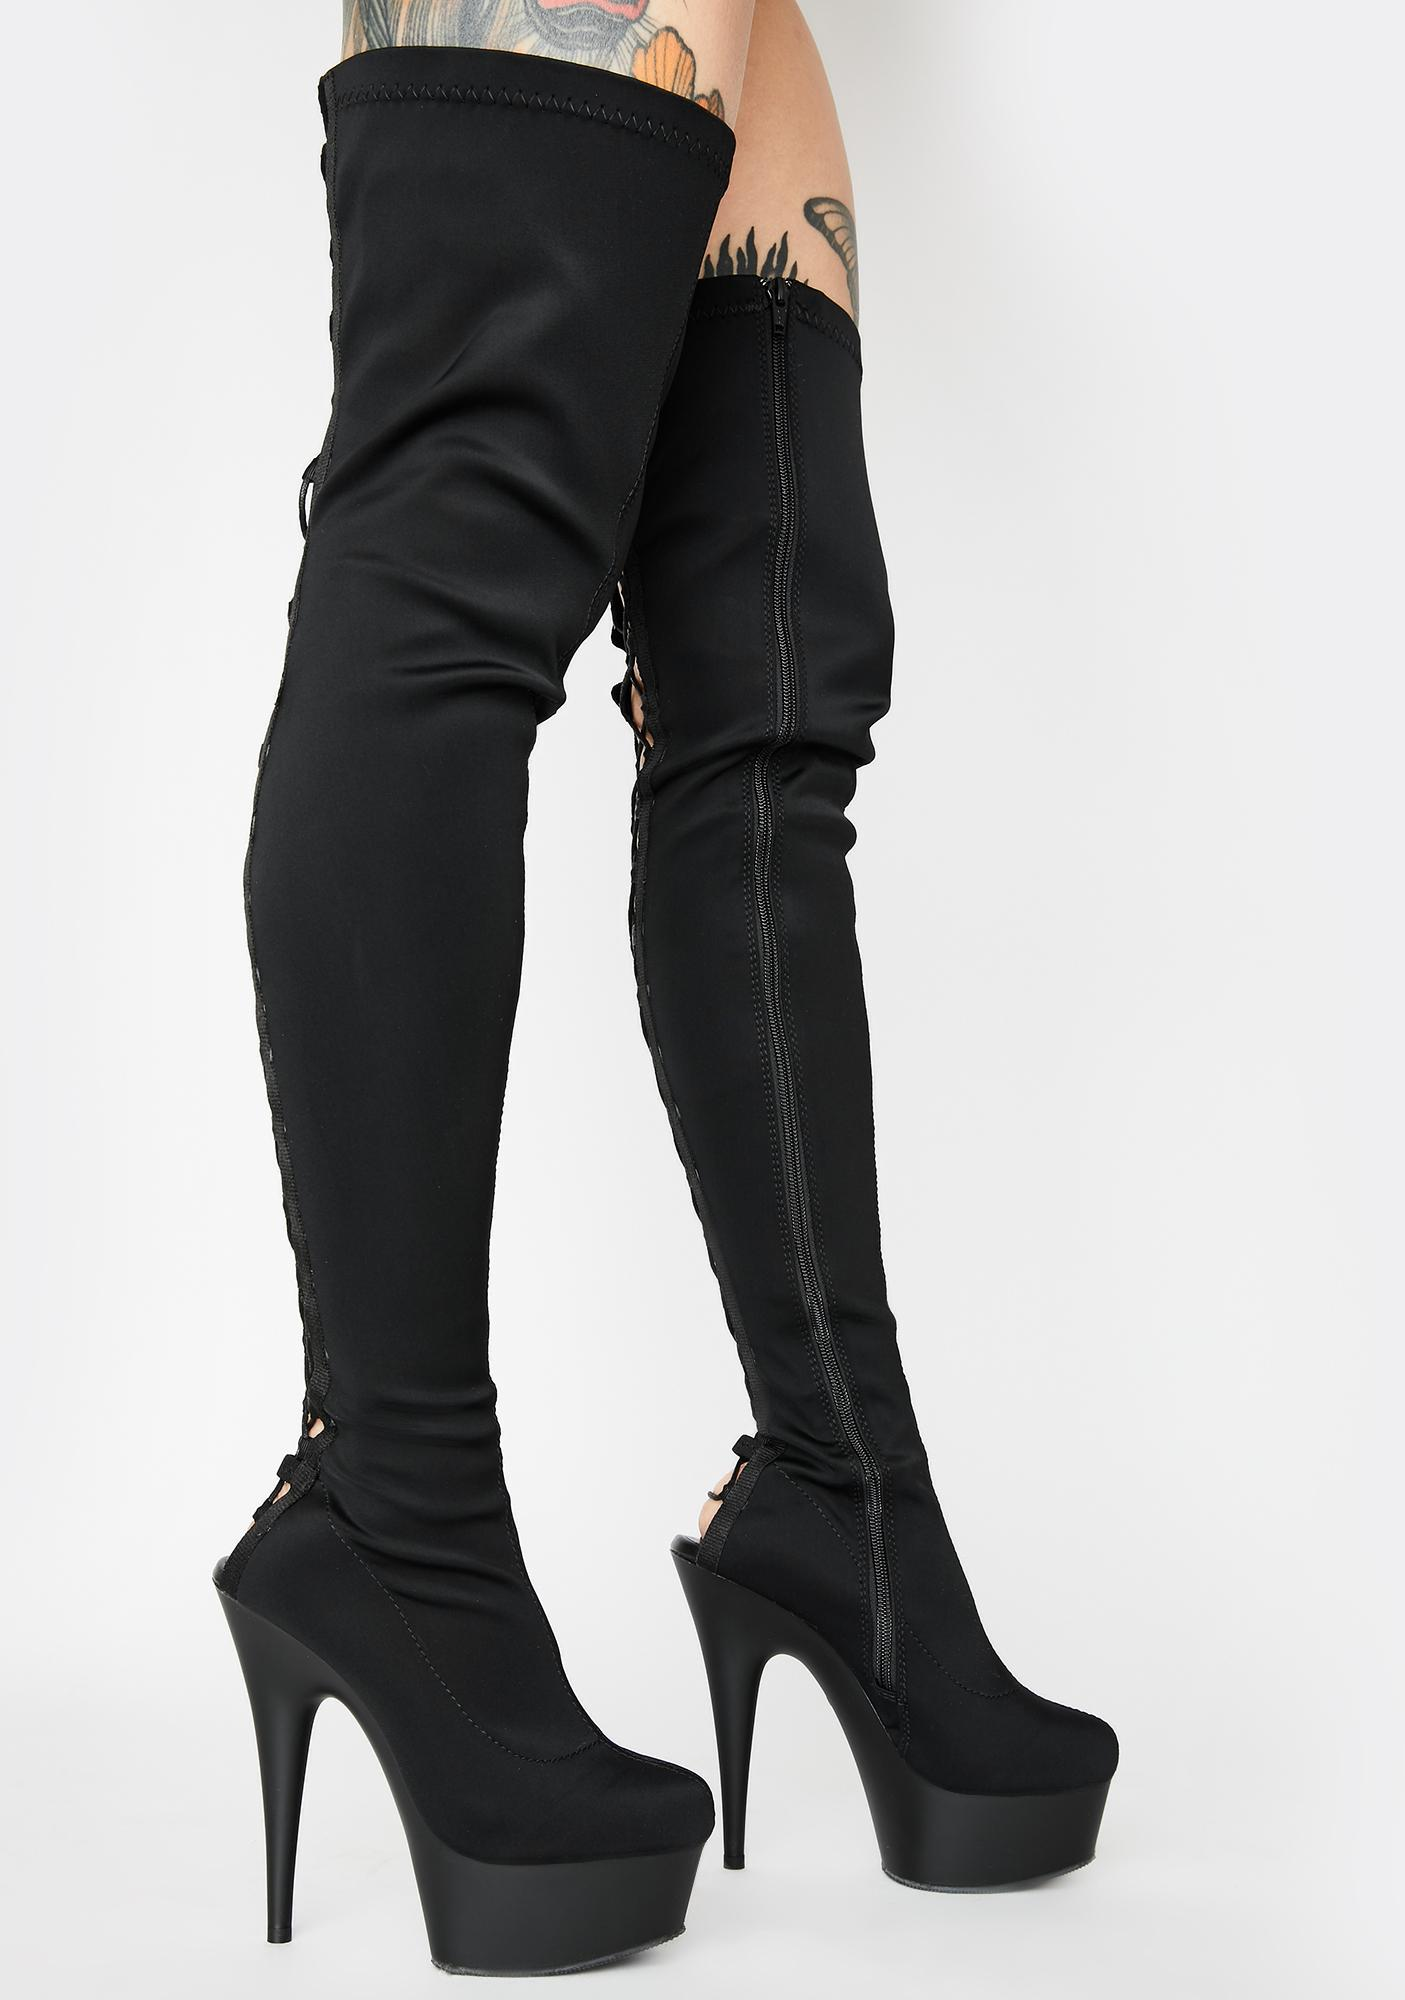 Pleaser Hold Up Thigh High Boots